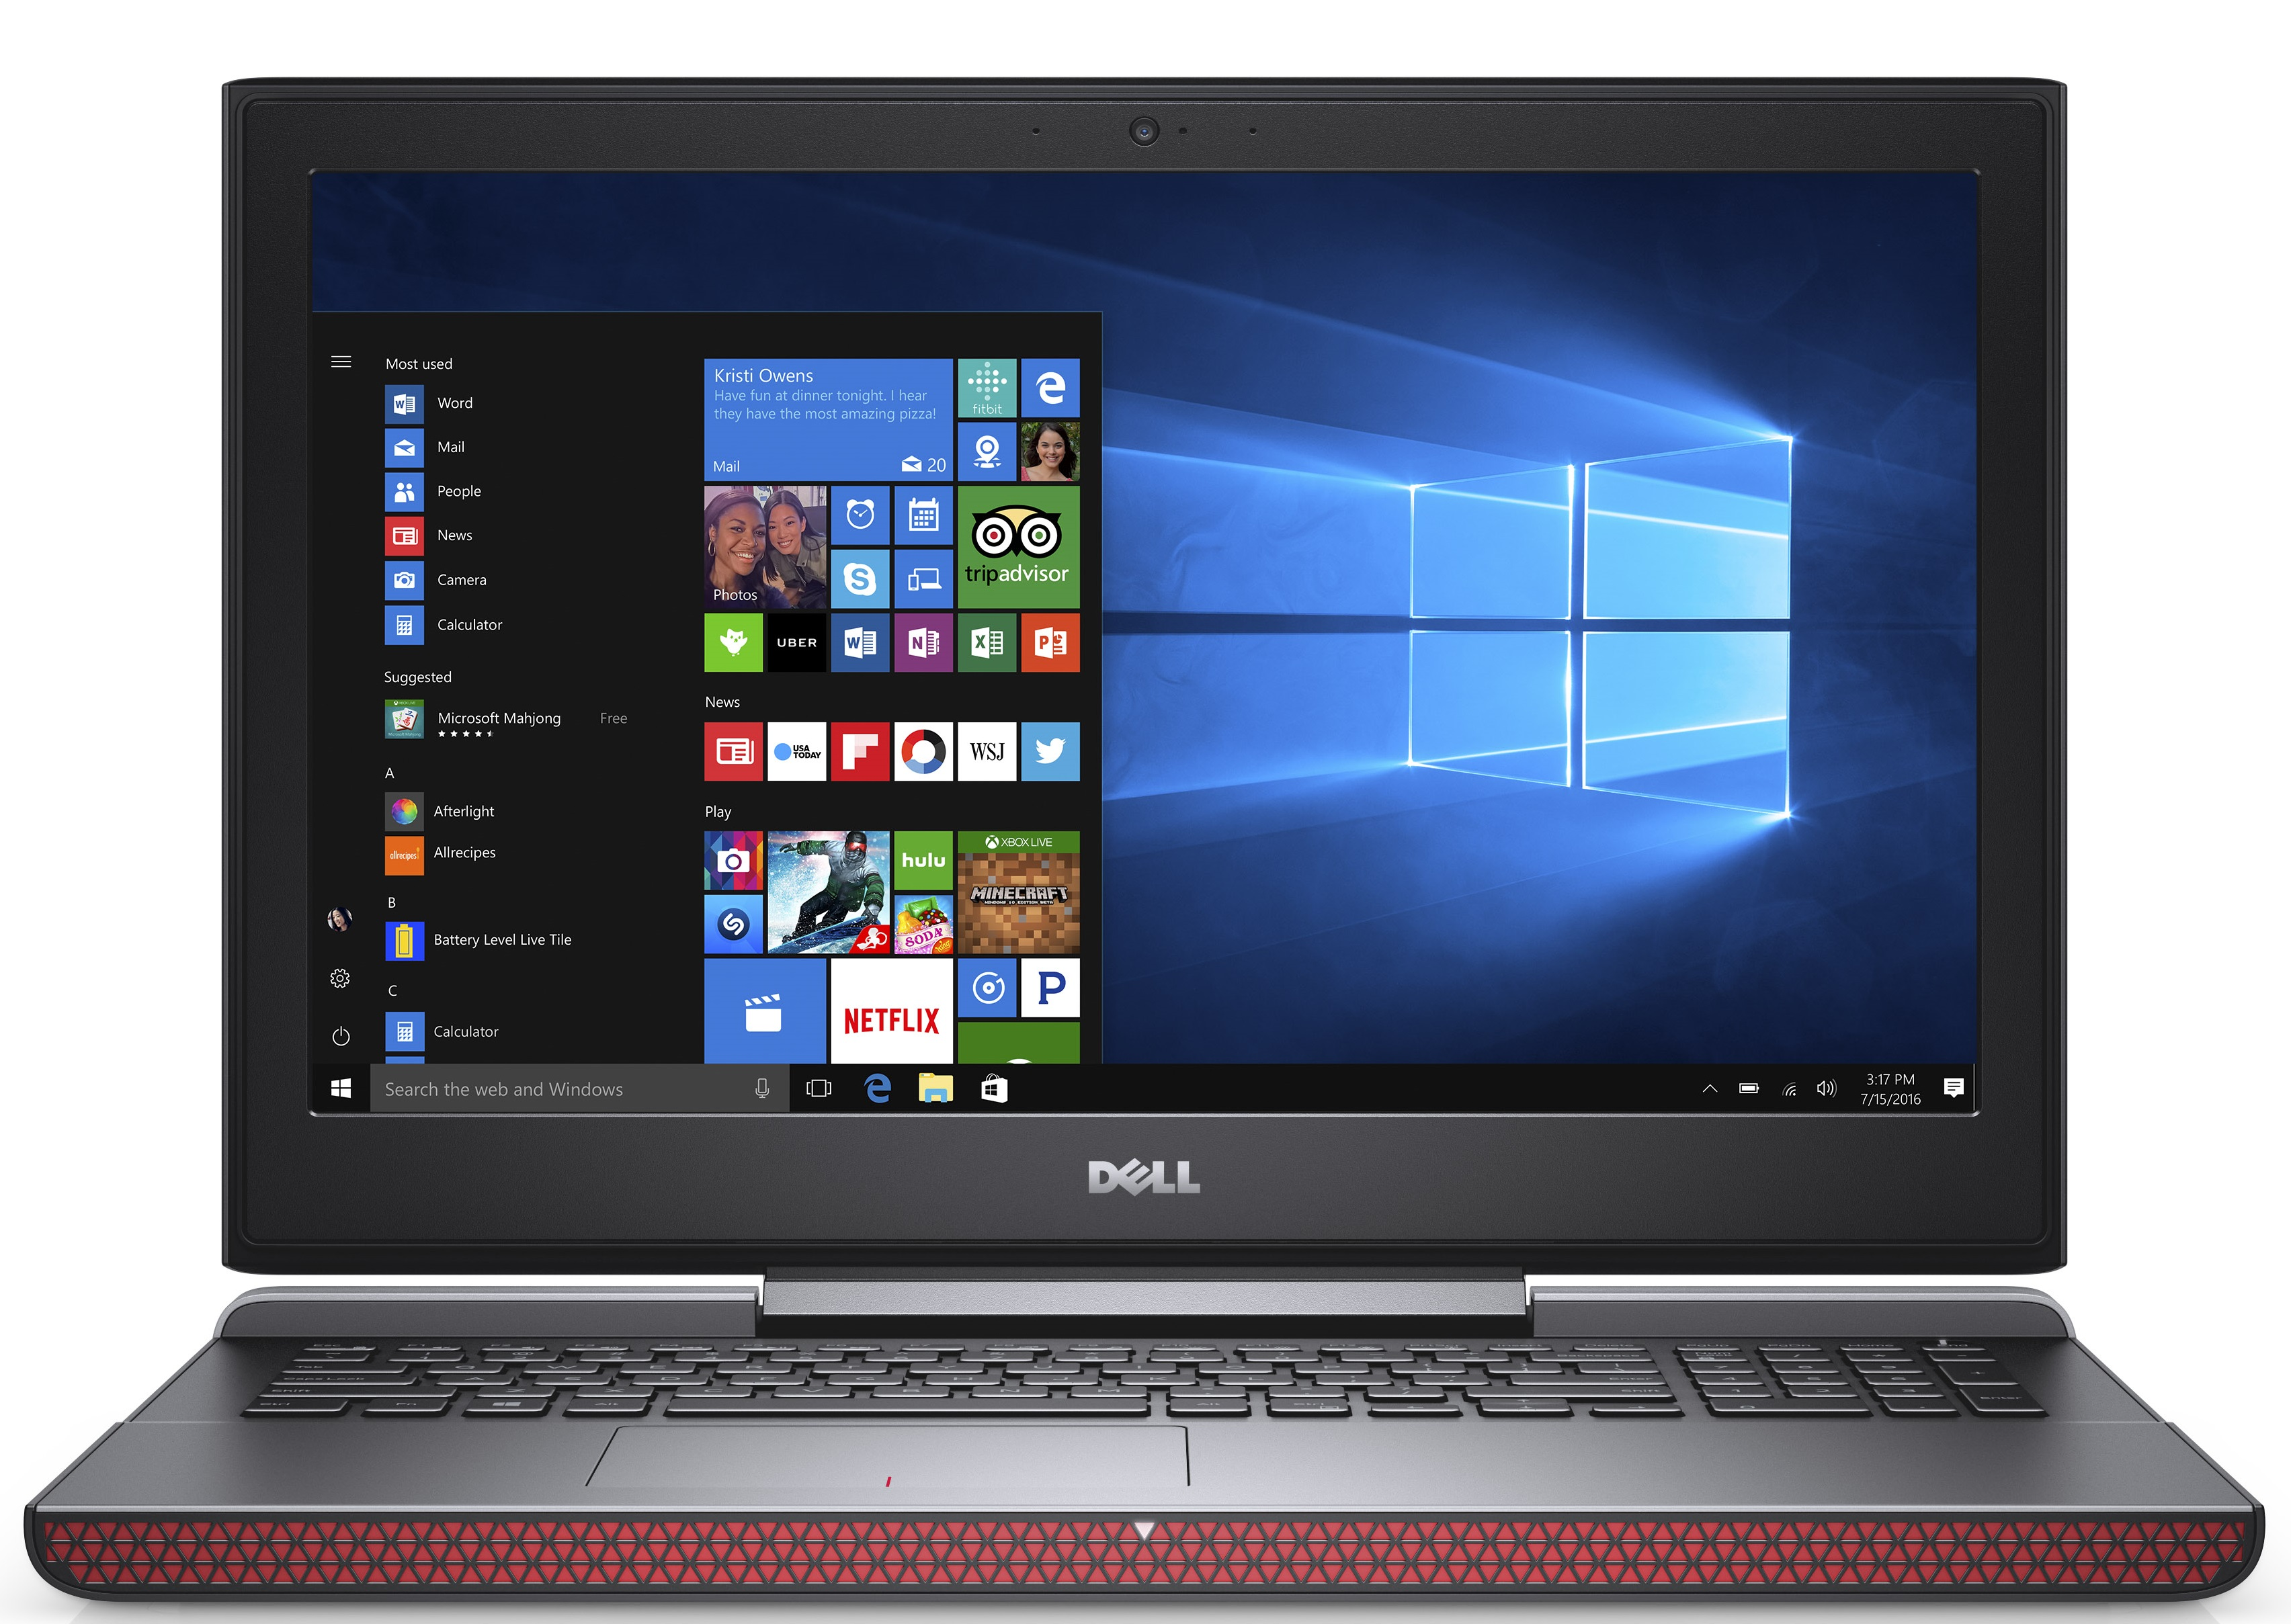 Dell Inspiron 15 7566 B62 - Dell Inspiron 15 Gaming Laptop Now Available in PH: 6th Gen Core i7 and GTX960M